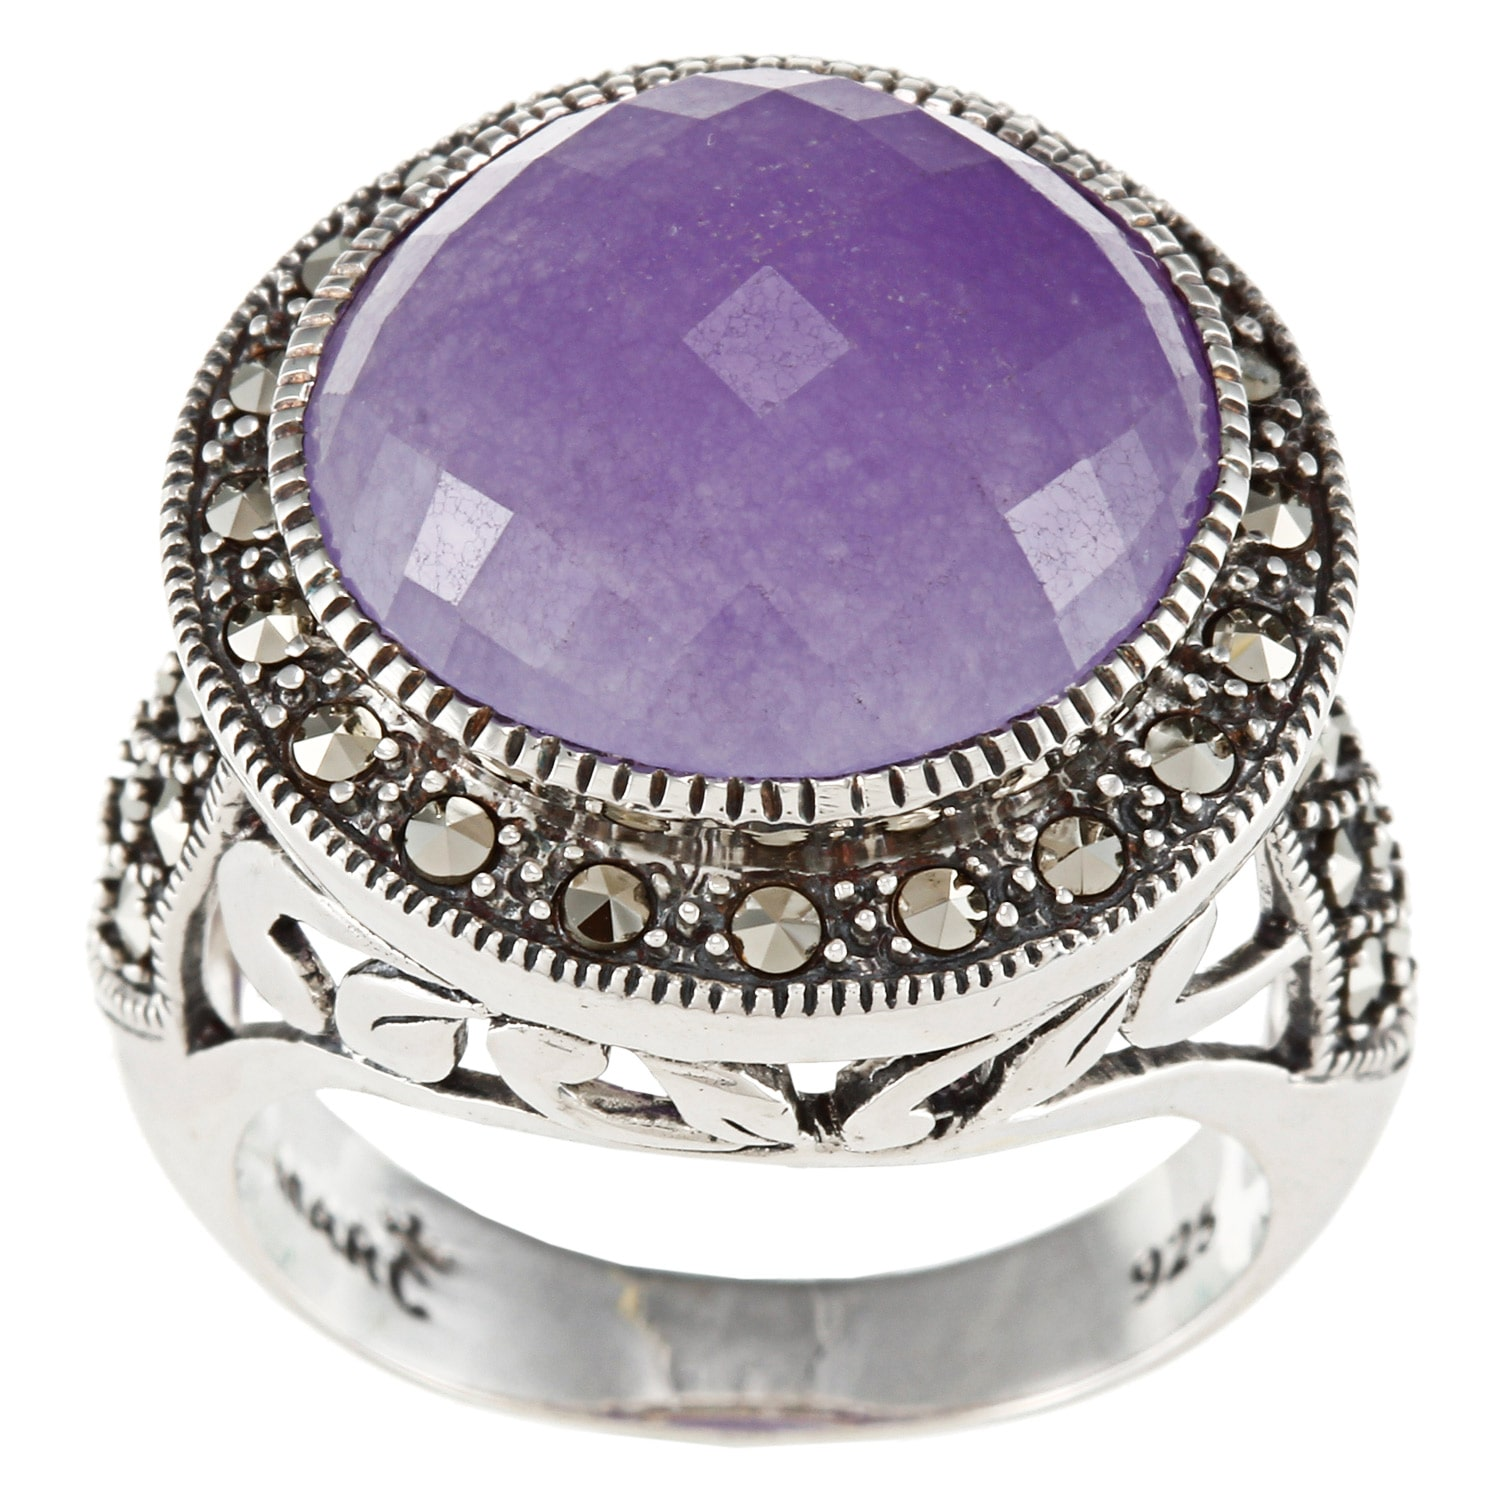 MARC  Sterling Silver asite and Gemstone Ring